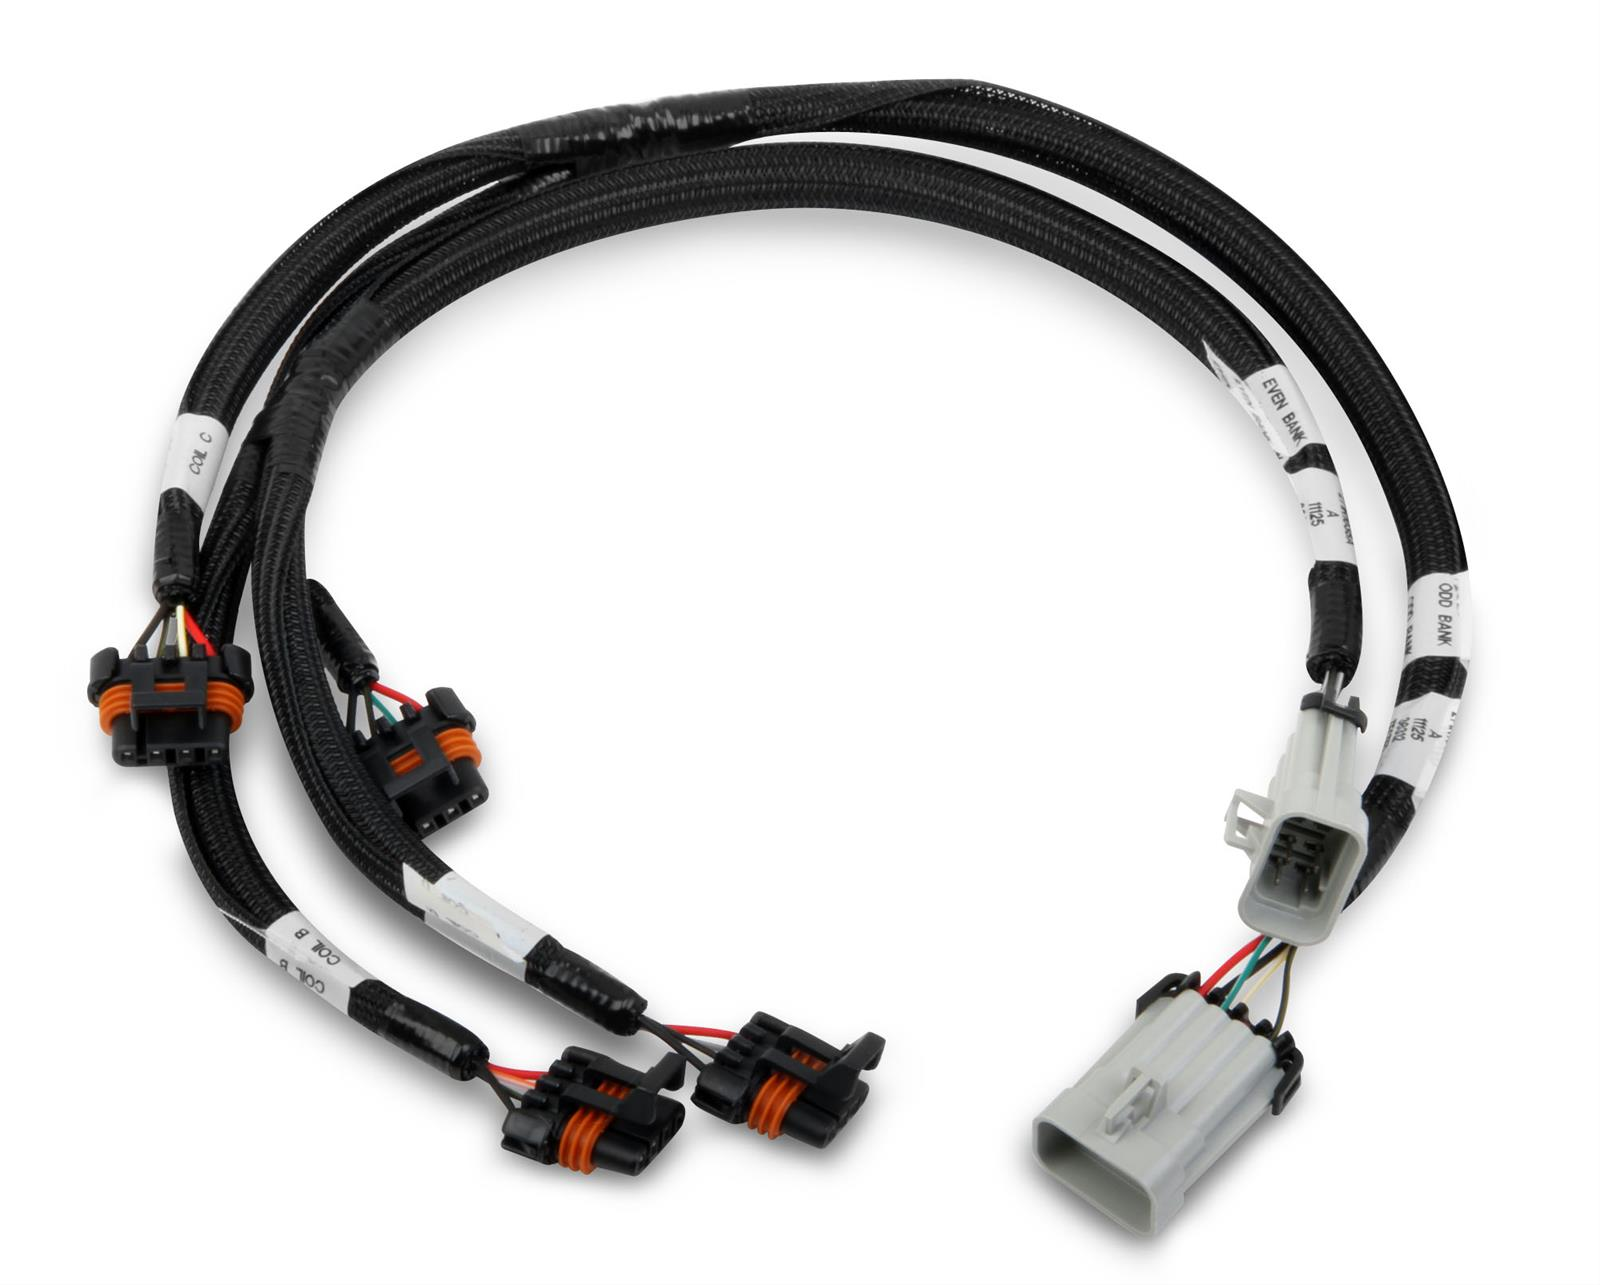 hly 558 309_xl holley efi systems wiring harnesses 558 309 free shipping on summit racing wiring harness at honlapkeszites.co